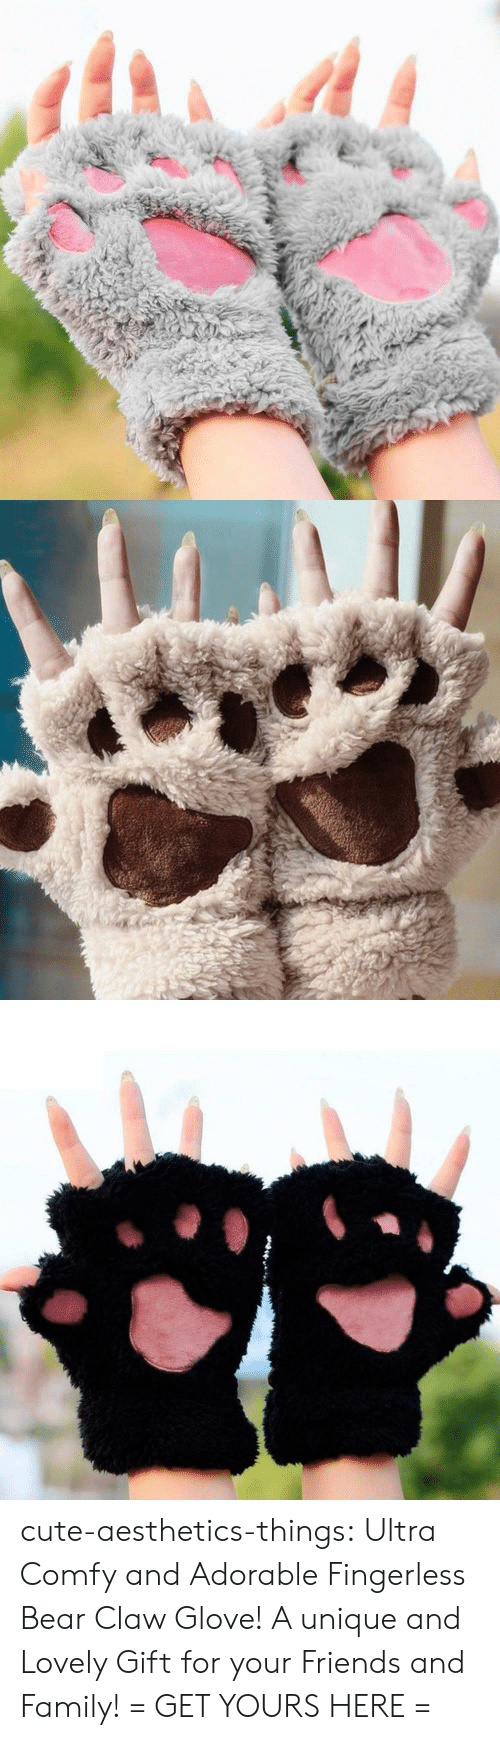 Cute, Family, and Friends: cute-aesthetics-things: Ultra Comfy and Adorable Fingerless Bear Claw Glove! A unique and Lovely Gift for your Friends and Family! = GET YOURS HERE =